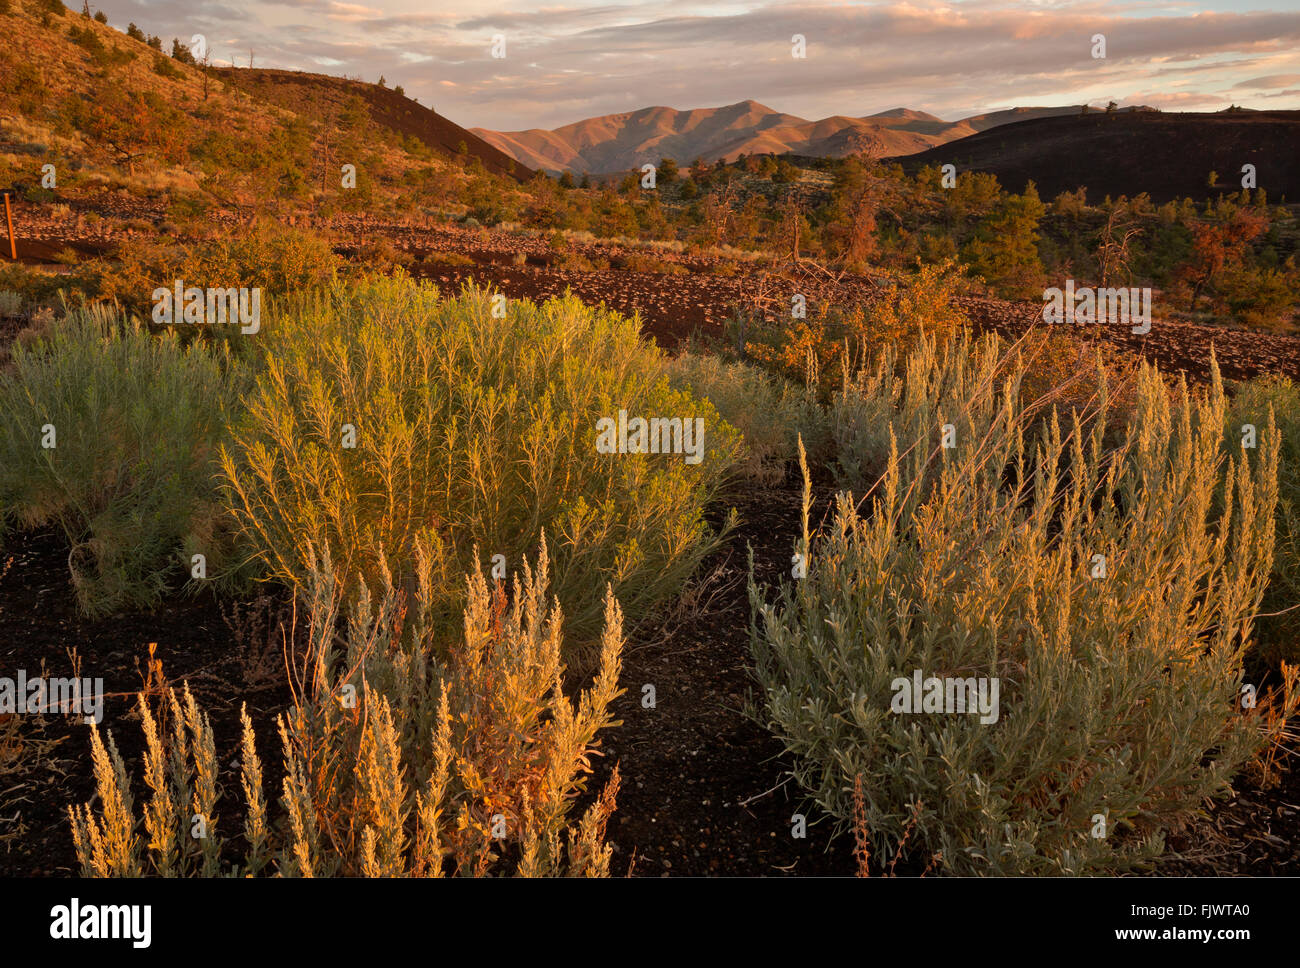 IDAHO - Sunrise colors on the pumice field below the Inferno Cone in Craters of the Moon National Monument and Preserve. - Stock Image